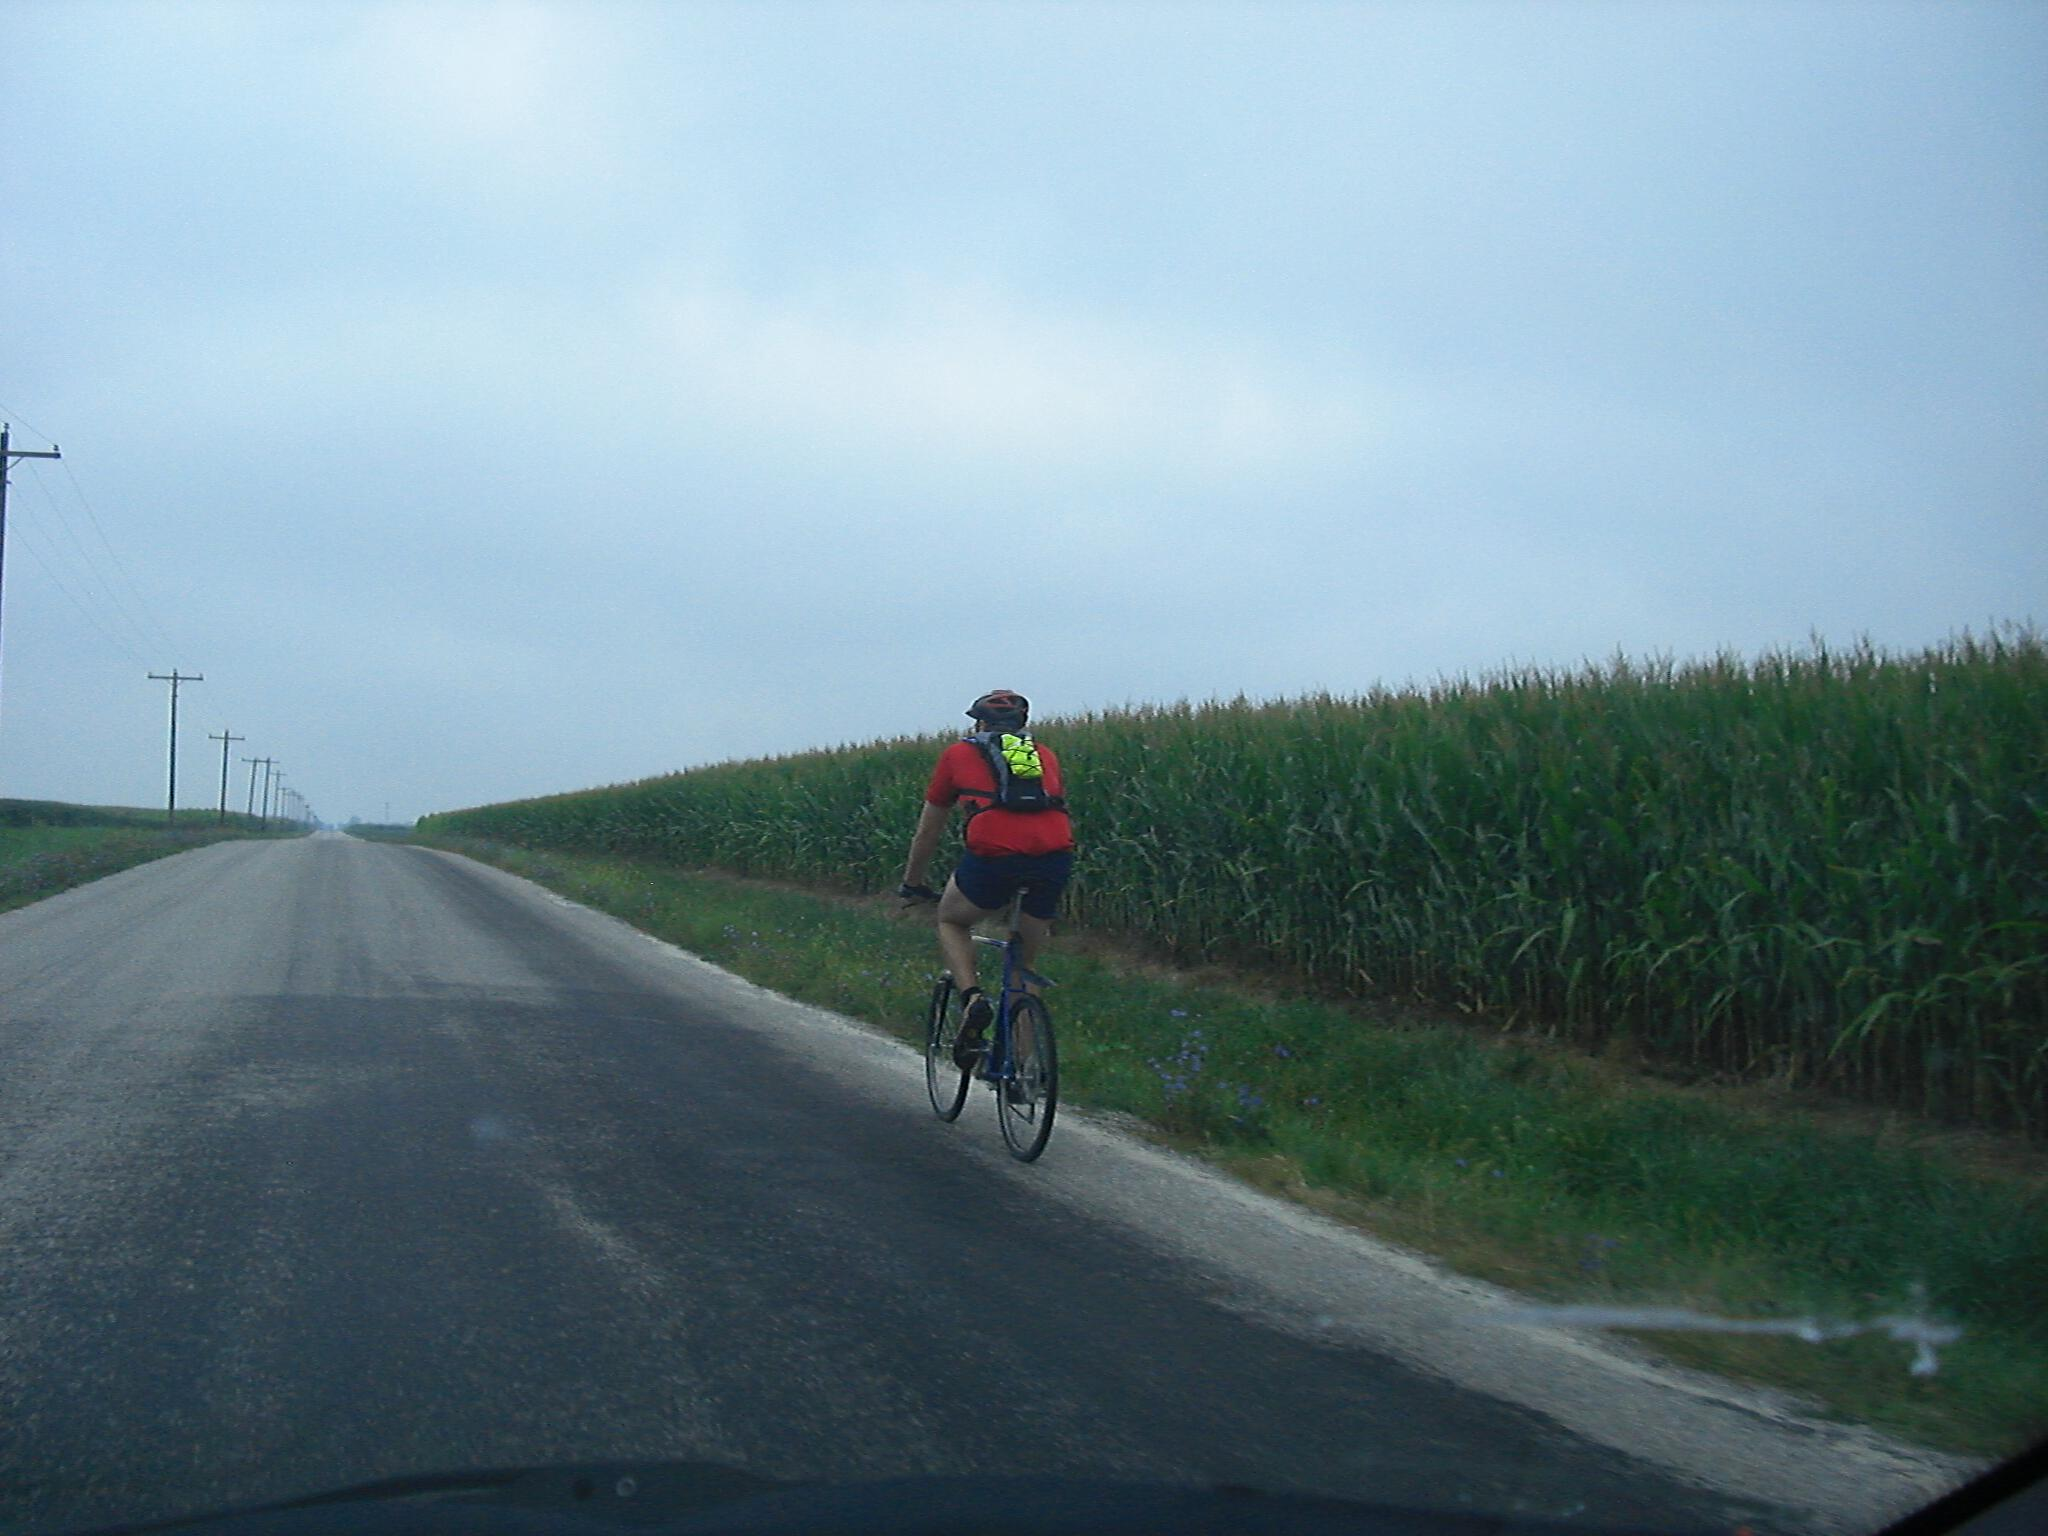 Bike rider in the middle of Illinois